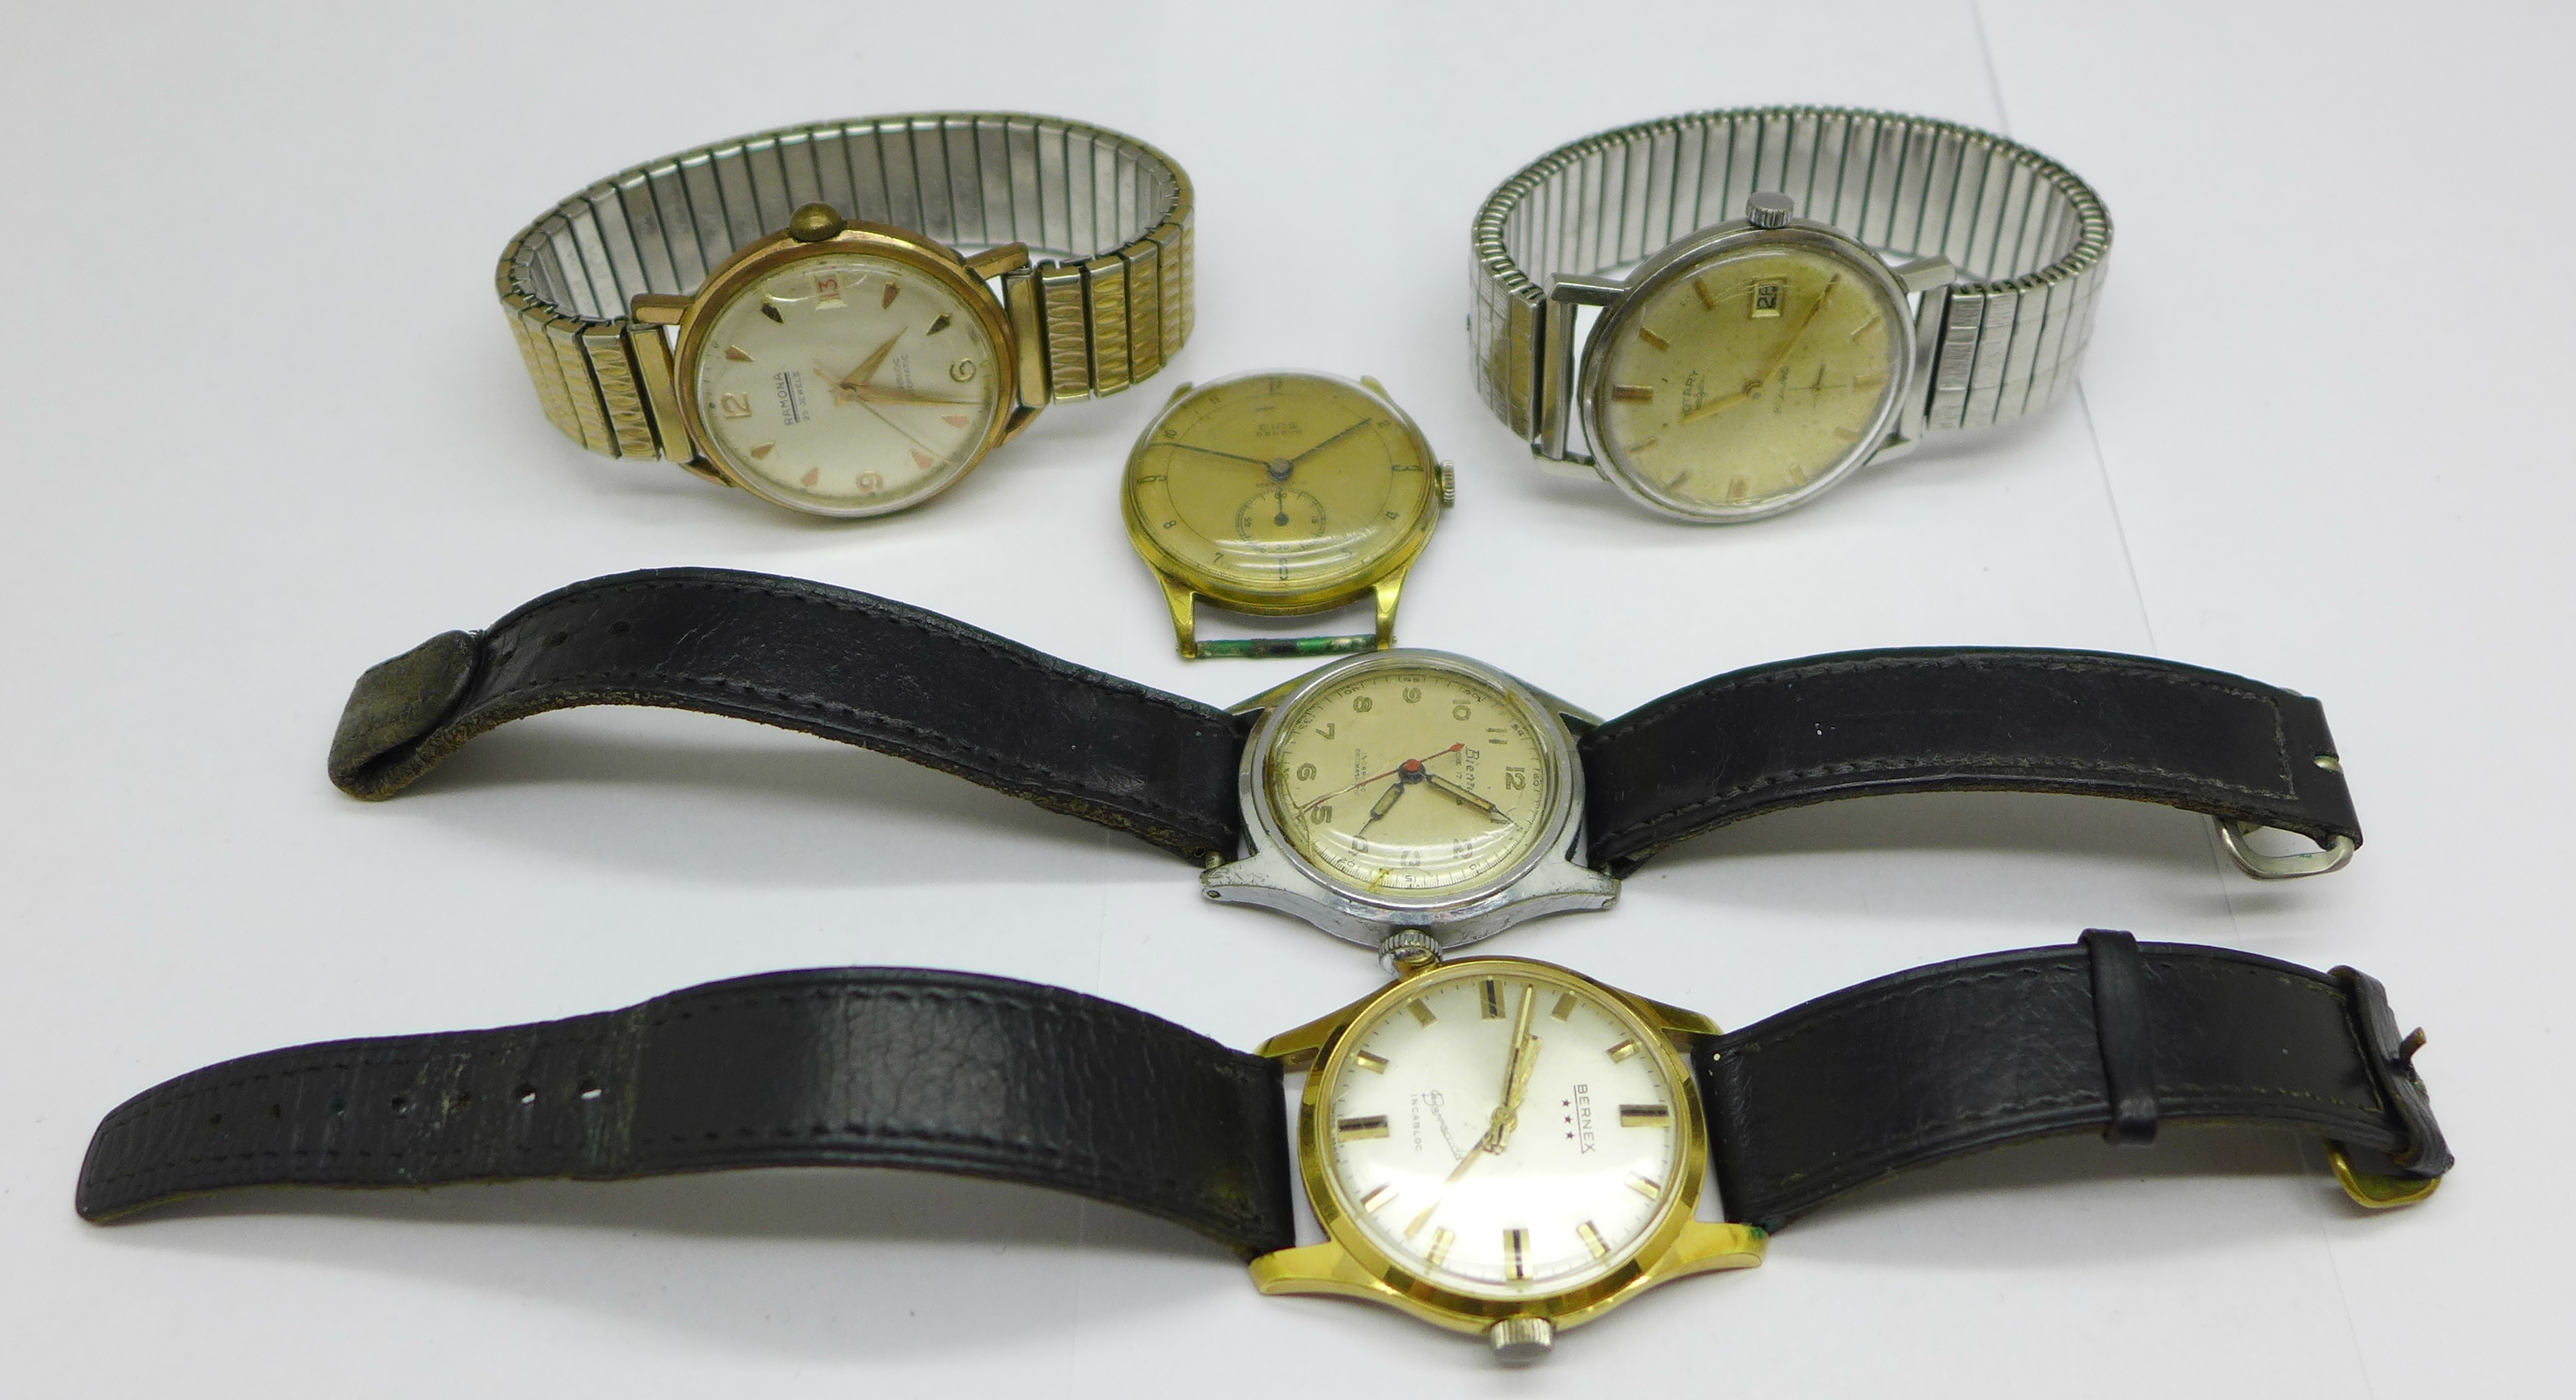 Five wristwatches including Bernex Barracuda and Ramona automatic